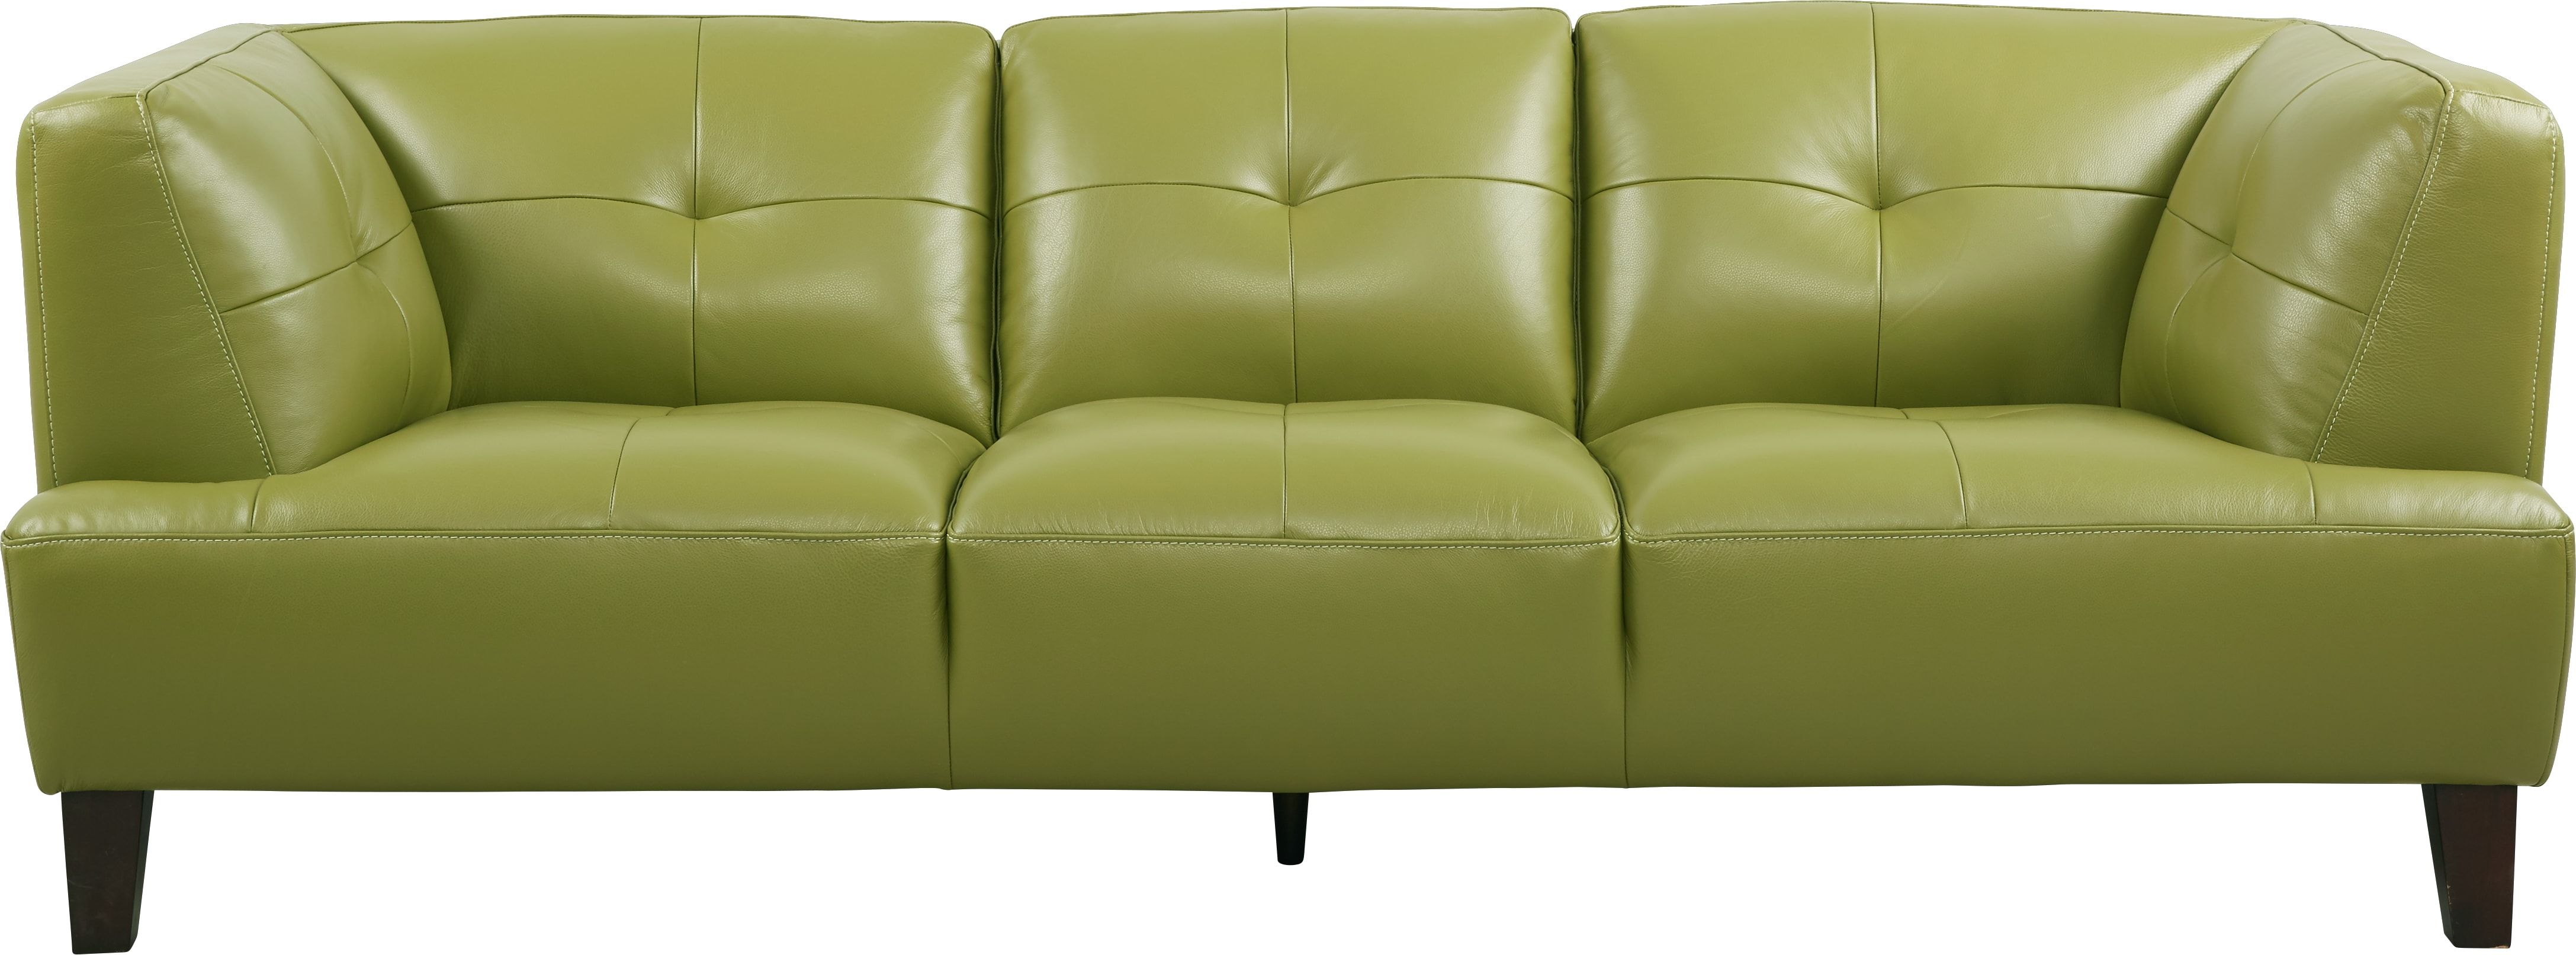 Villa Capri Green Leather Sofa Green Leather Sofa Sofa Leather Sofa